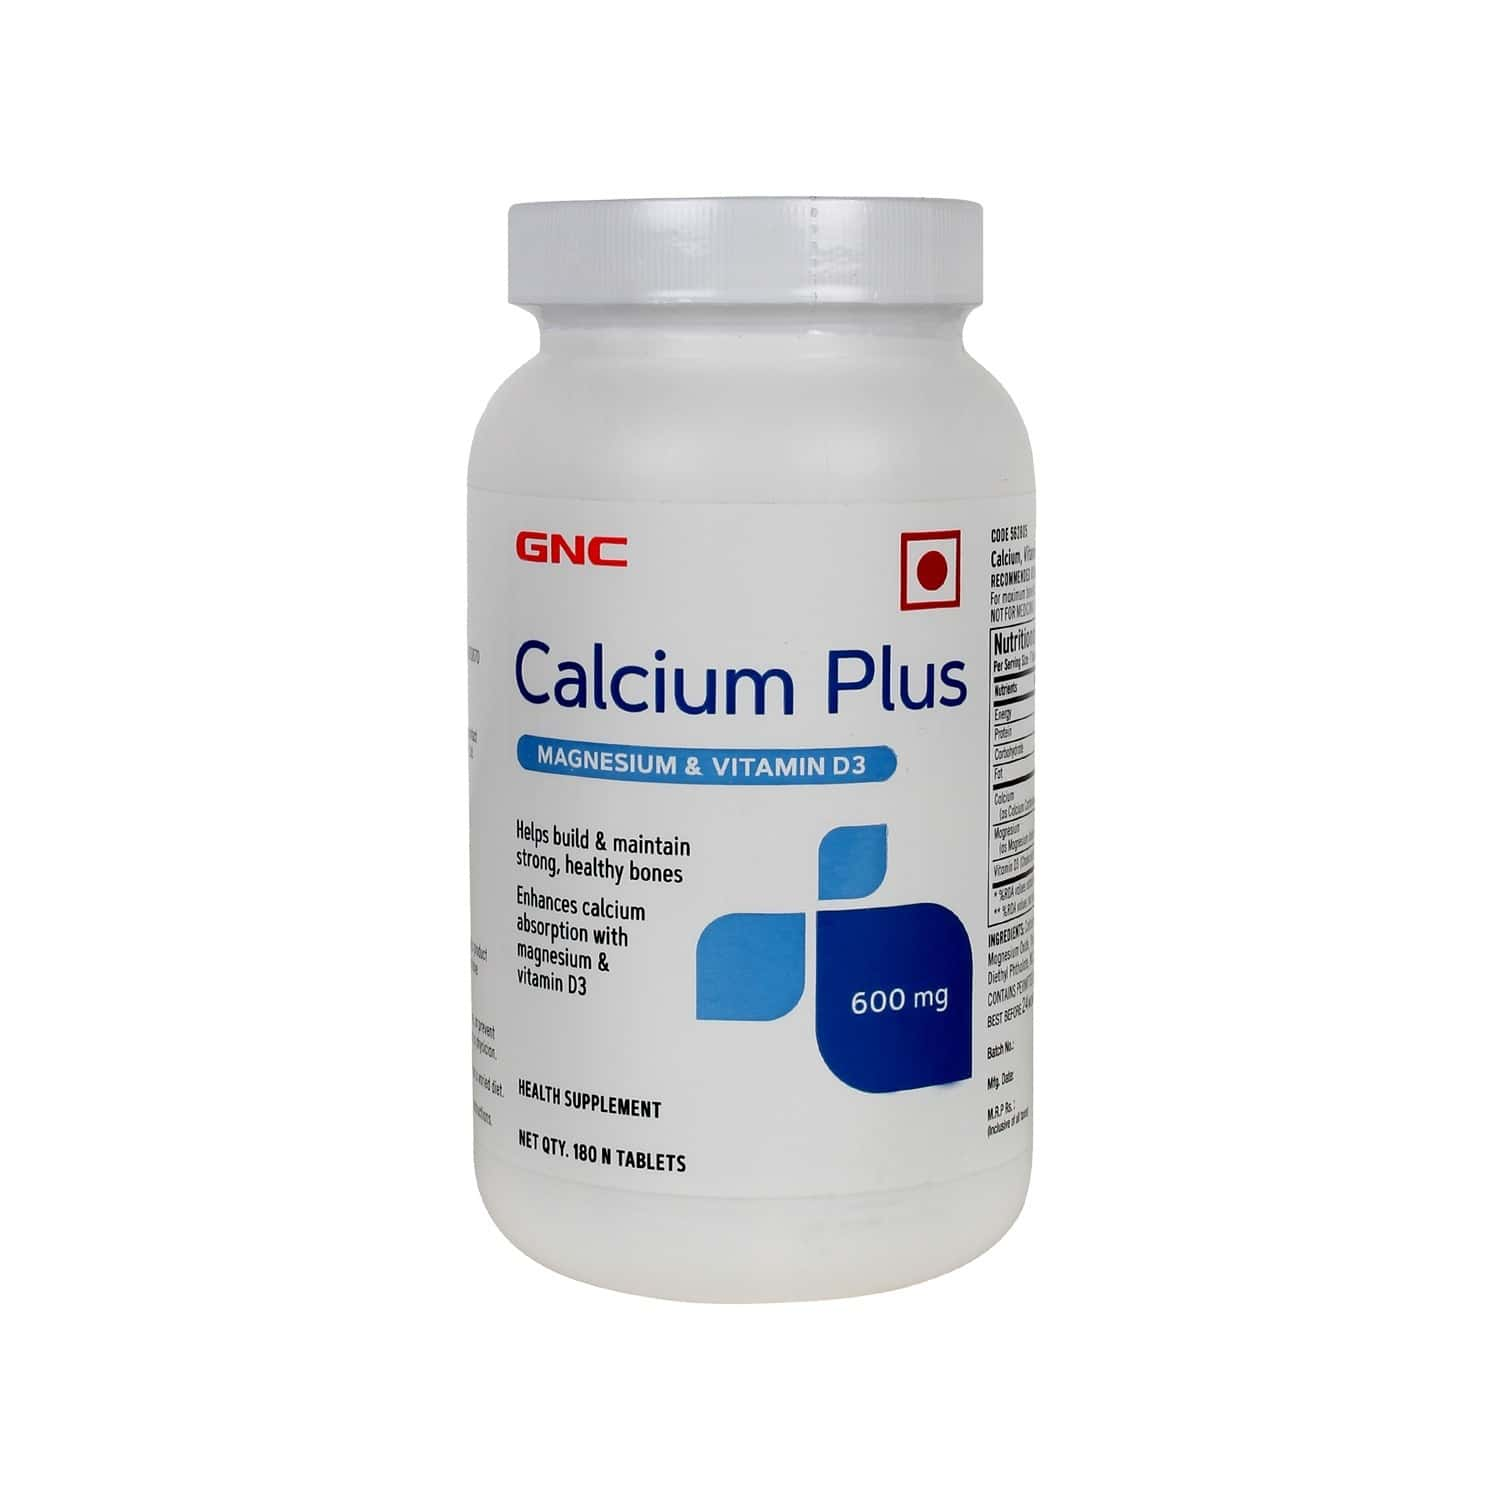 Gnc Calcium Plus 600mg With Magnesium And Vitamin D3 - 180 Tablets